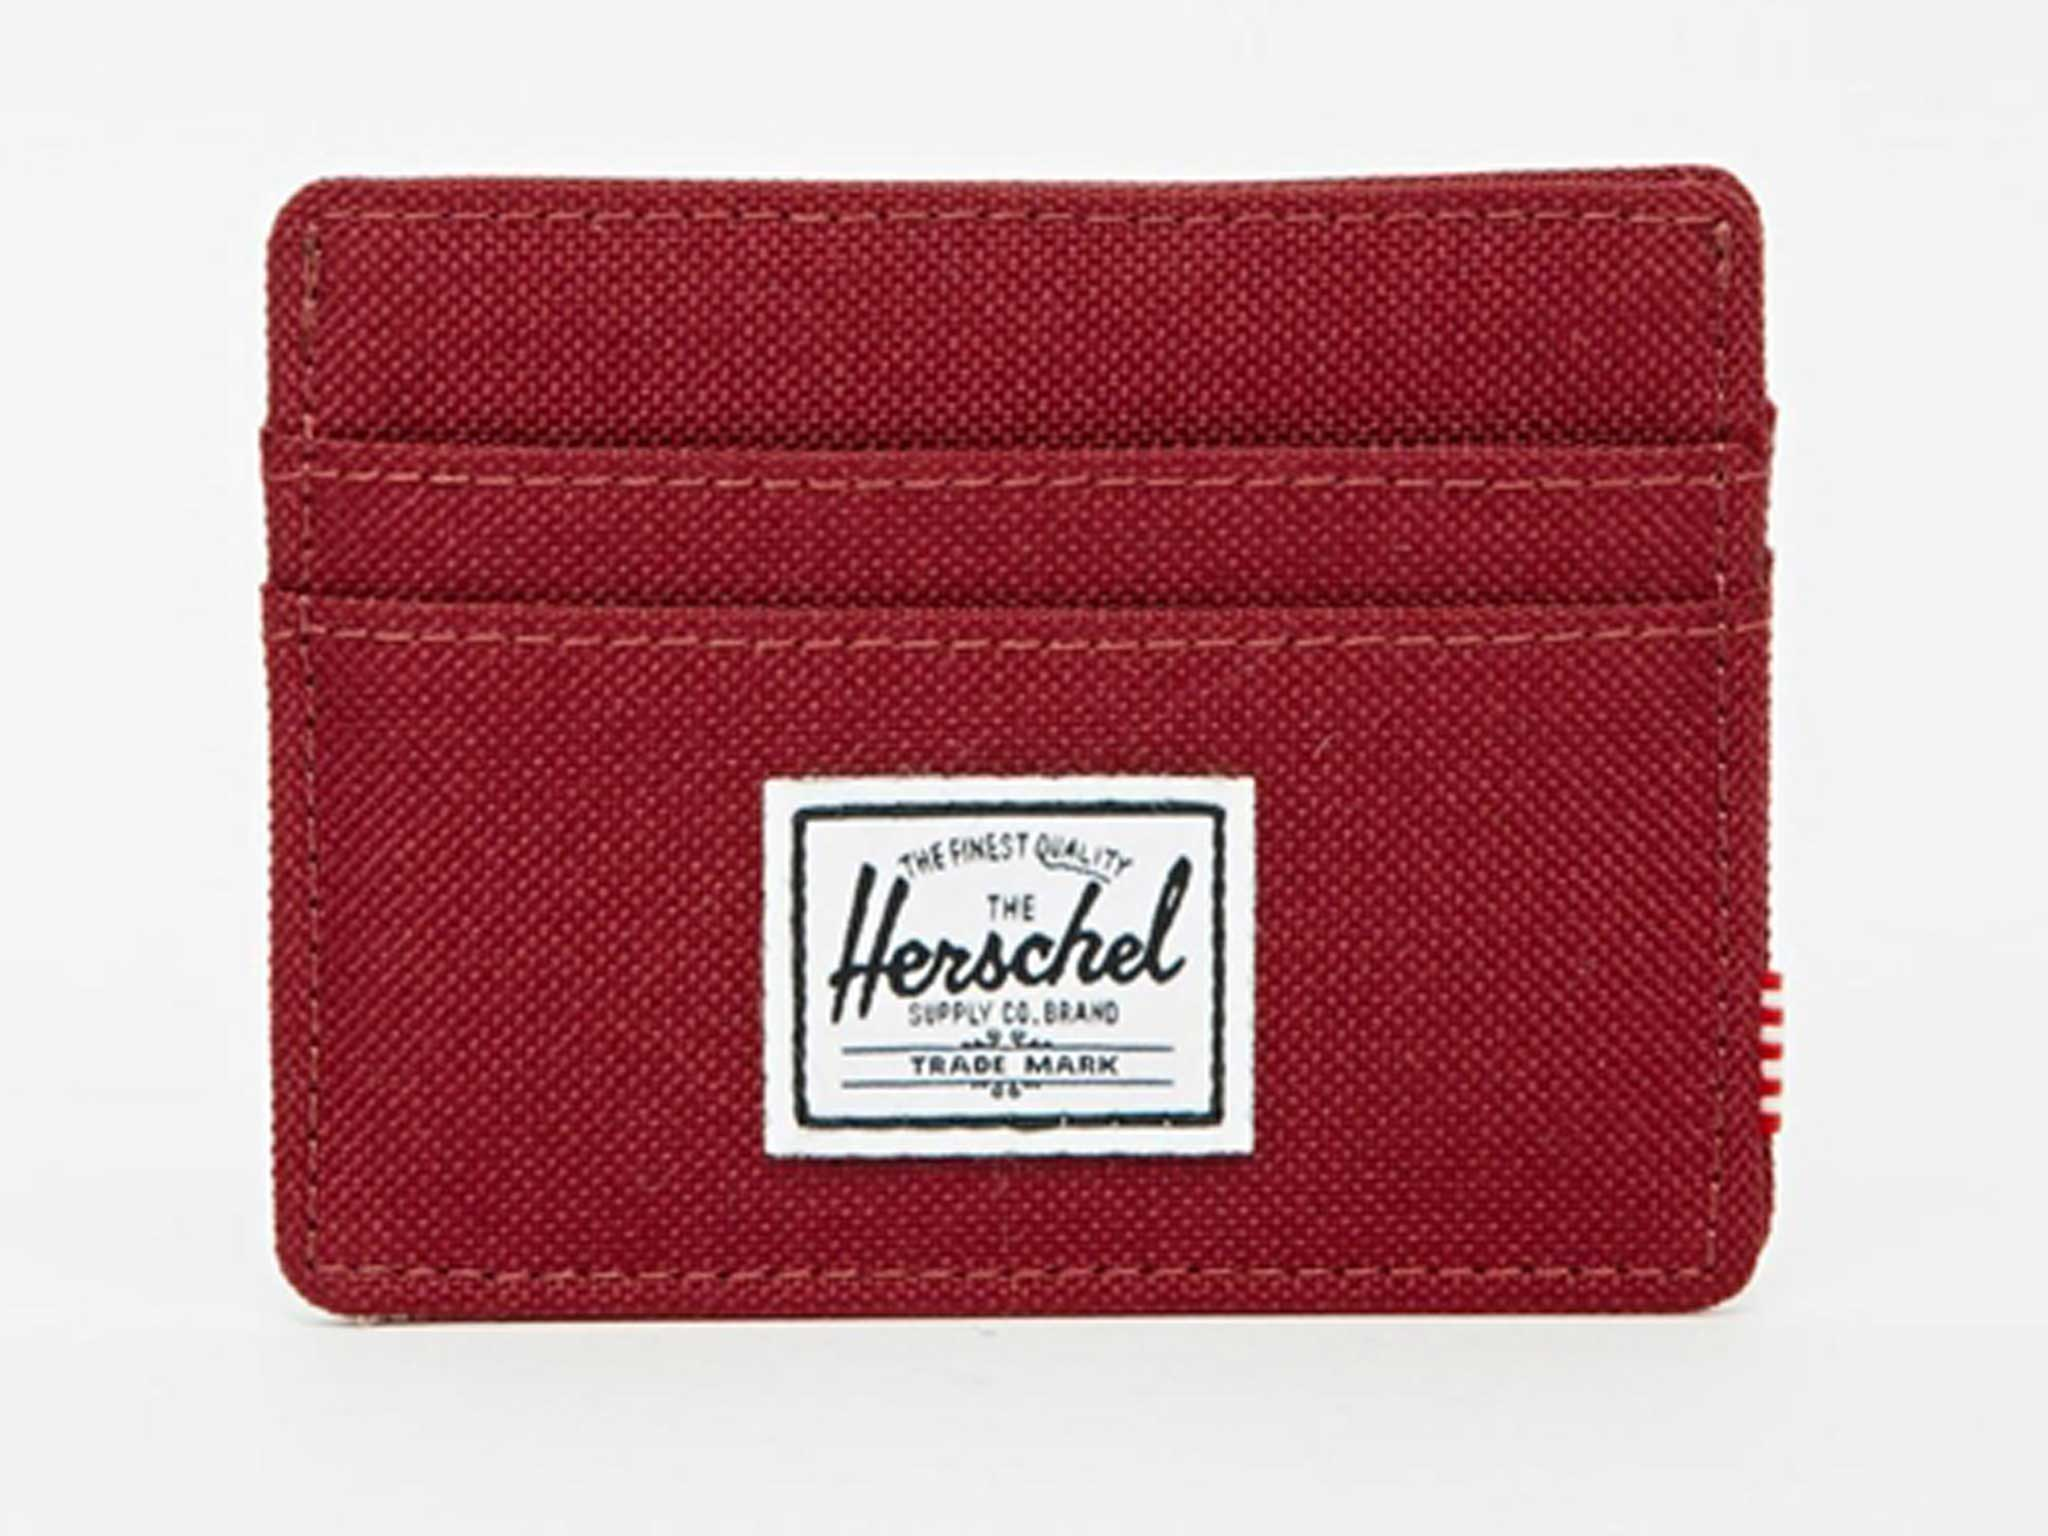 10 best mens card holders the independent a brand typically associated with heritage inspired backpacks herschel has extended its know how to card holders with practicality at the forefront of its reheart Image collections